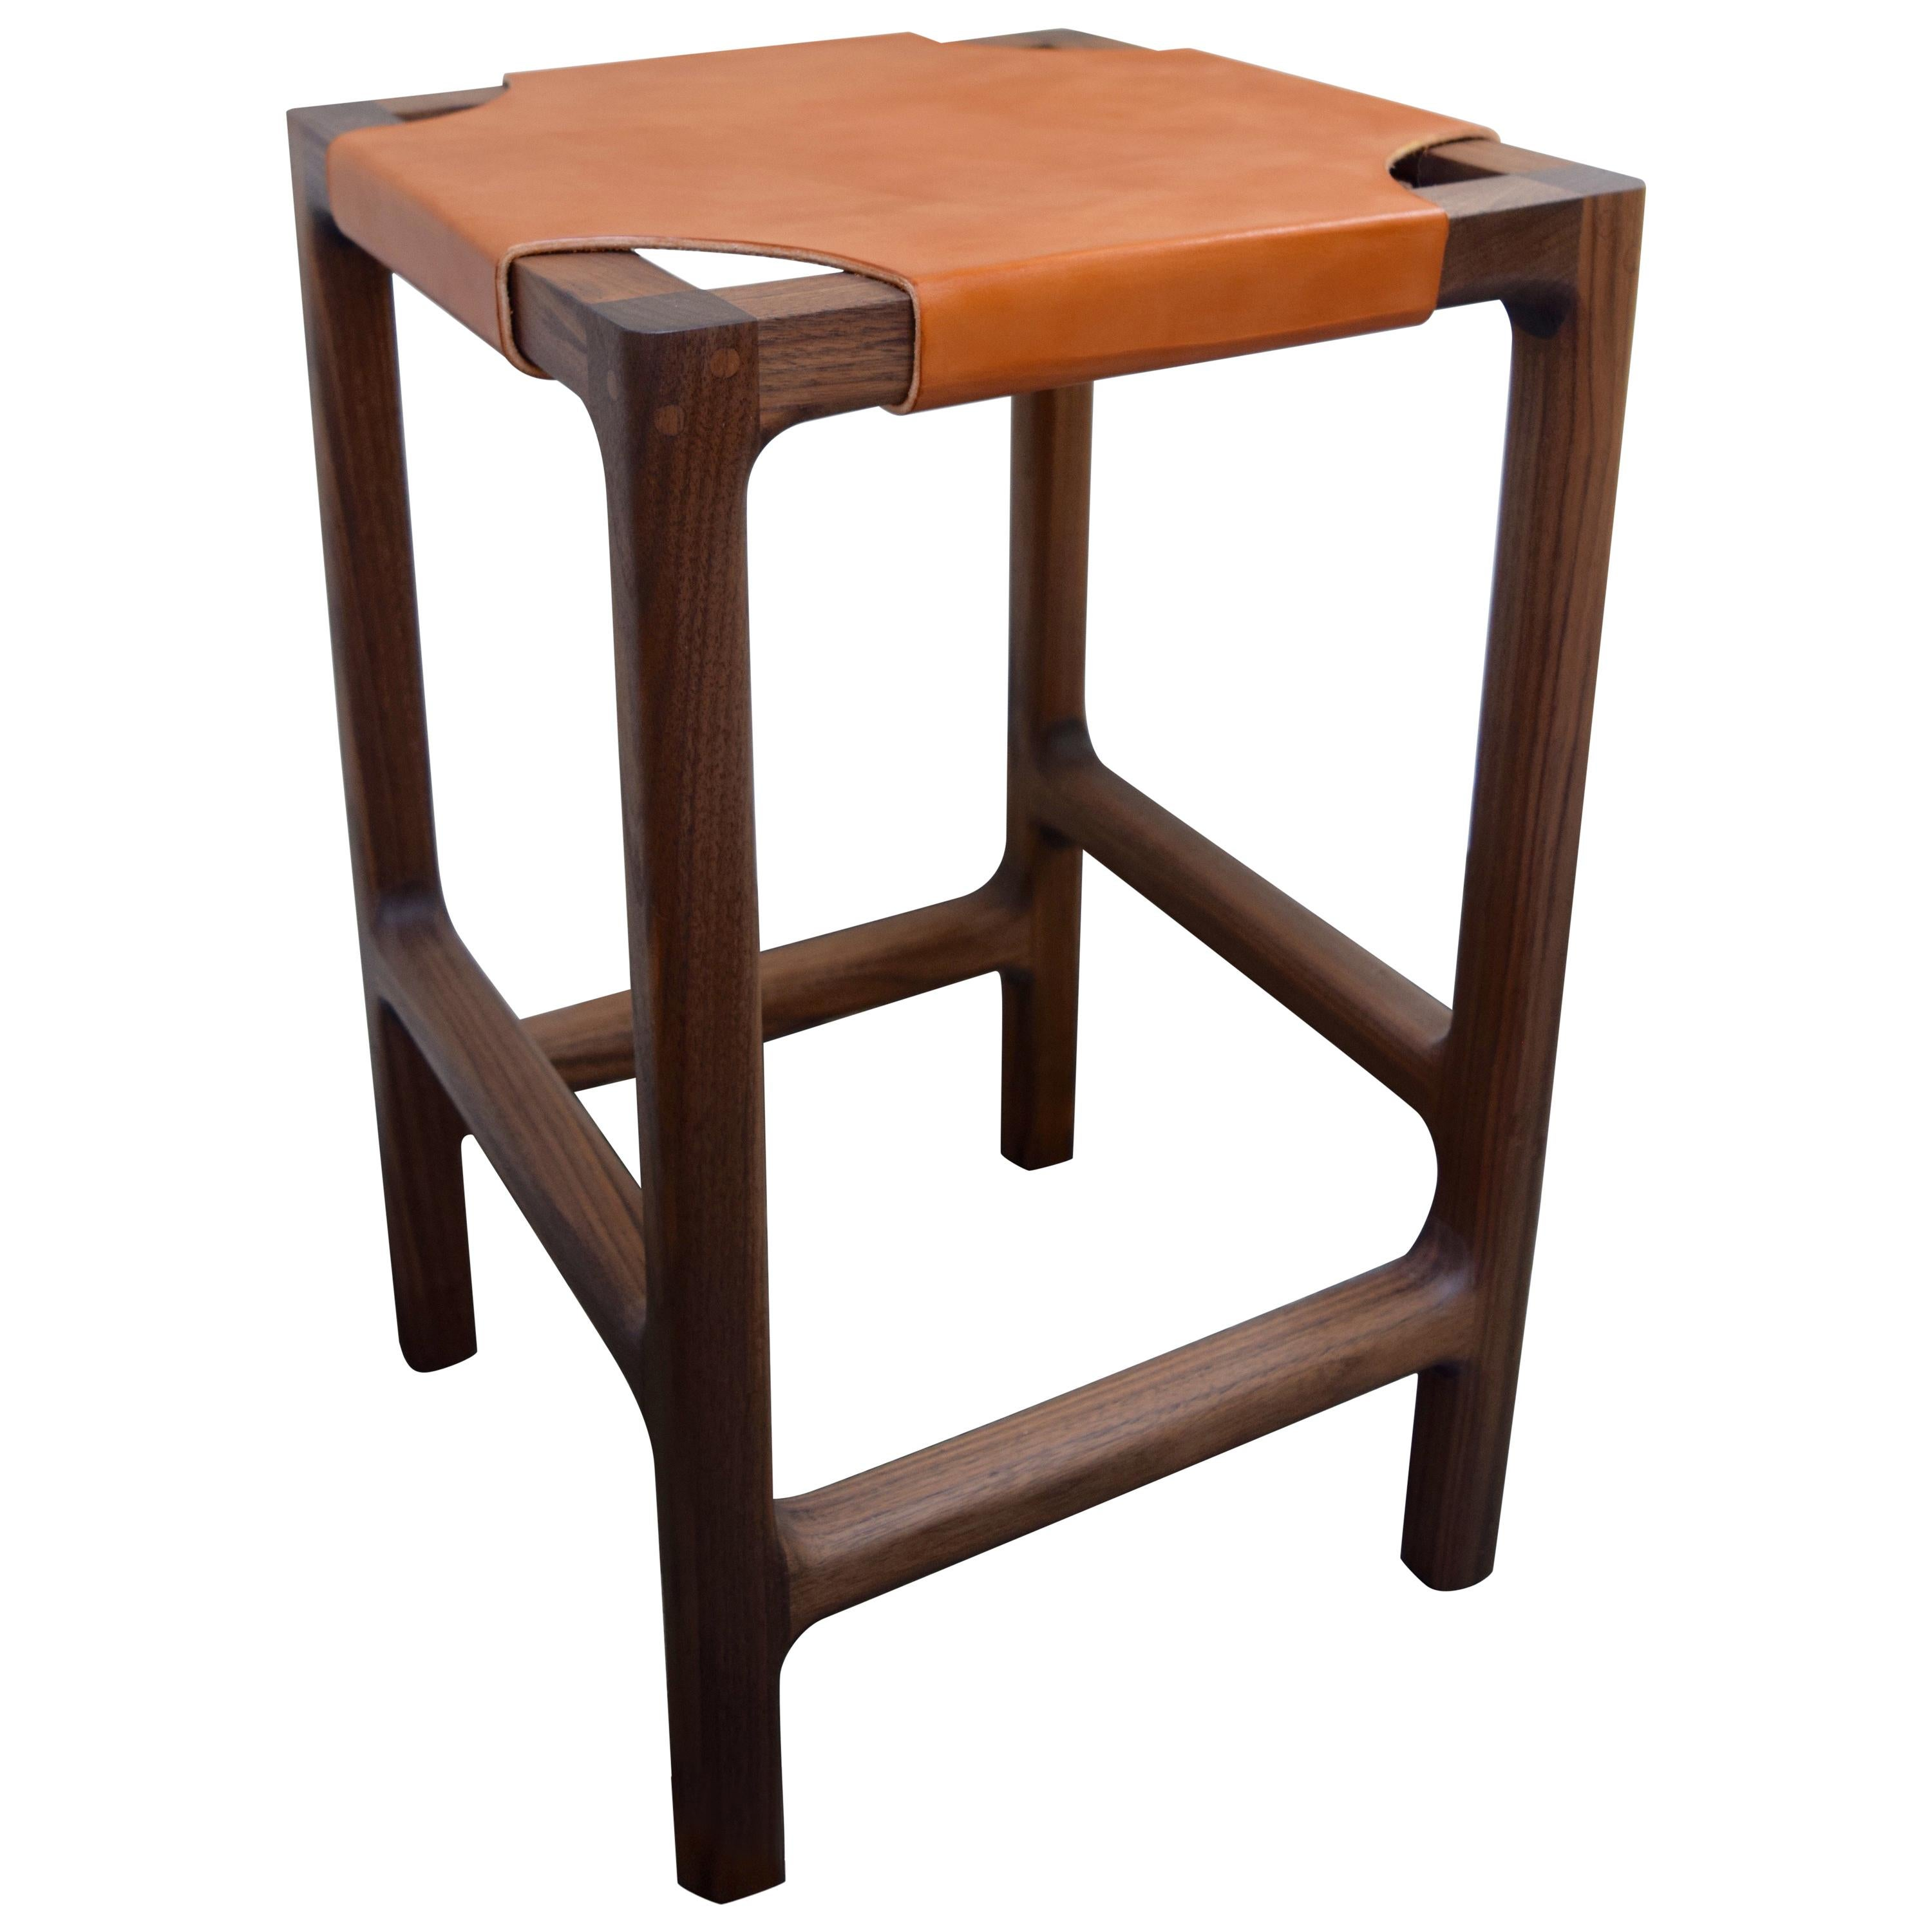 Reyes Backless Counter Stool in Walnut with Russet Leather